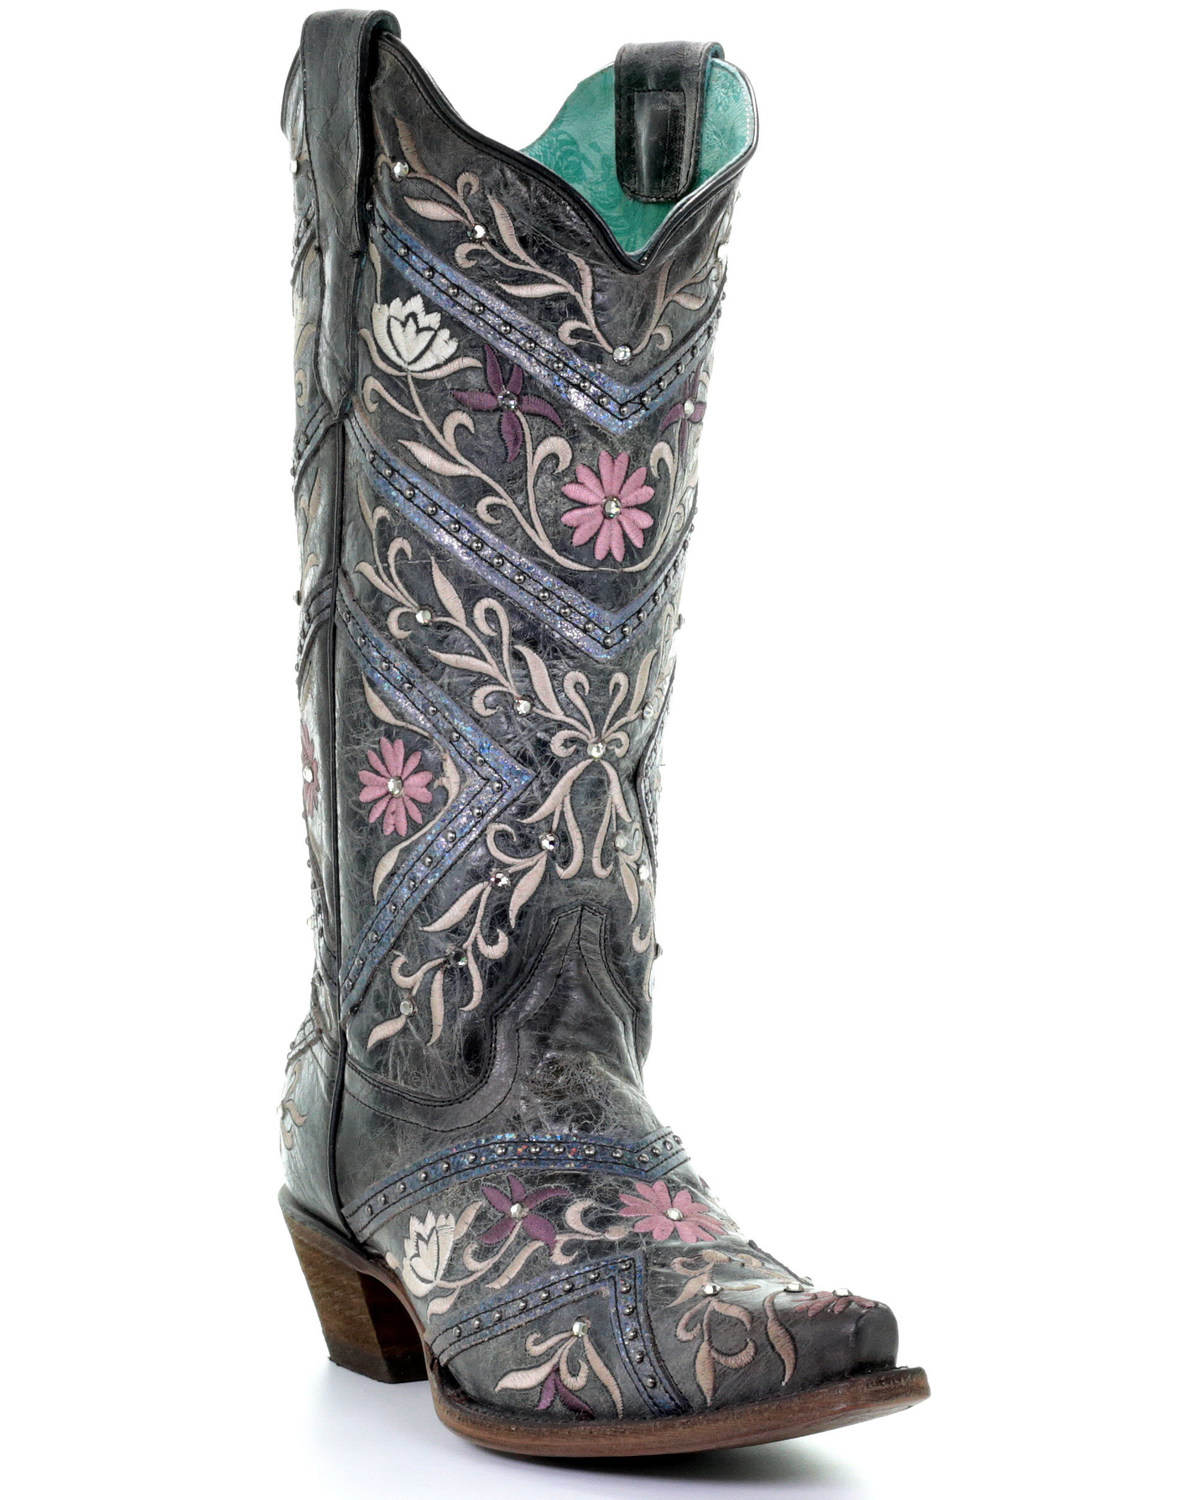 ccd445732c6 Corral Women's Floral Embroidery & Rhinestones Western Boots - Snip Toe